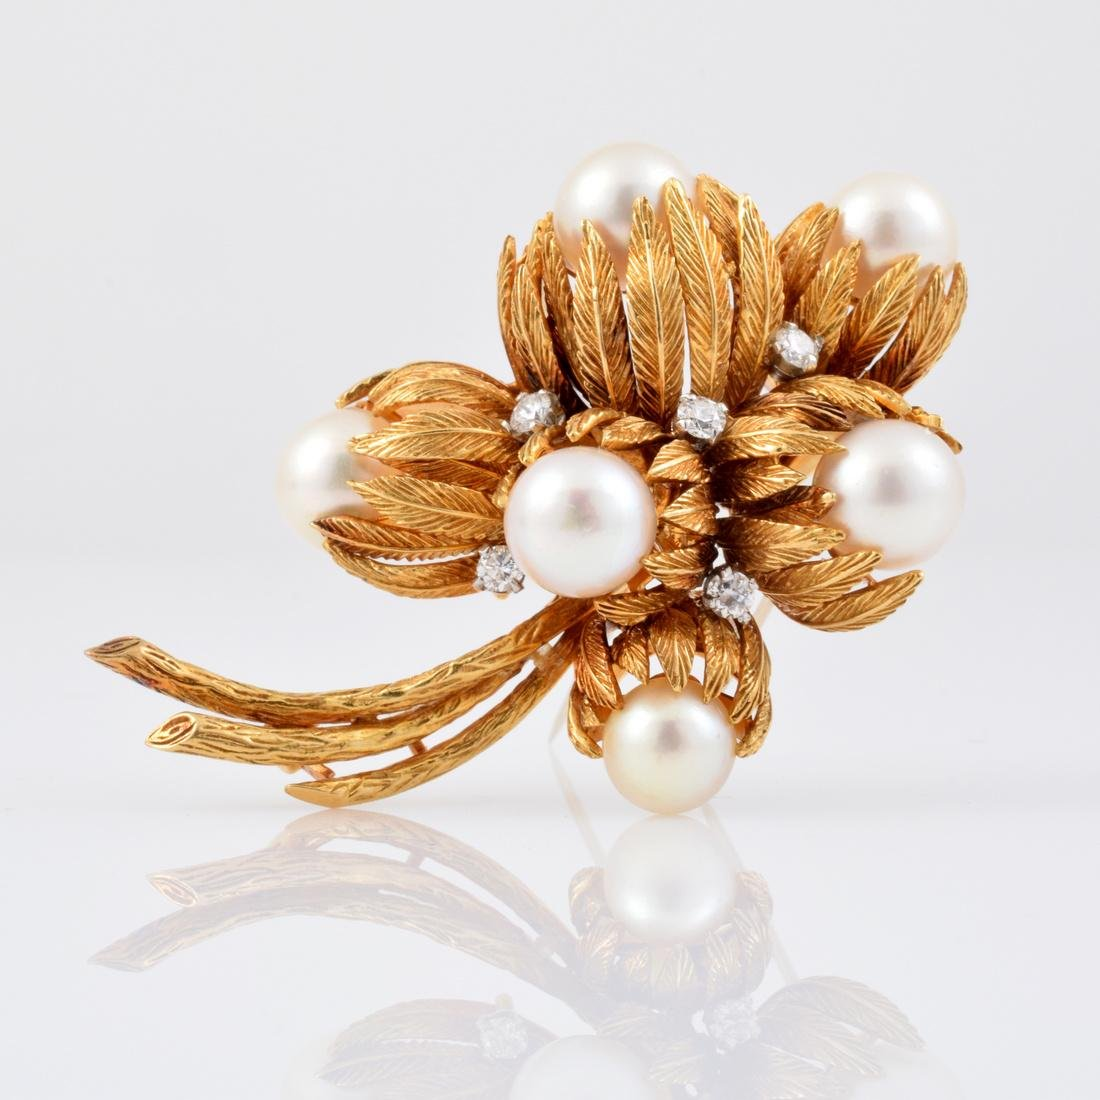 Van Cleef & Arpels 18K Gold, Diamond & Pearl Brooch